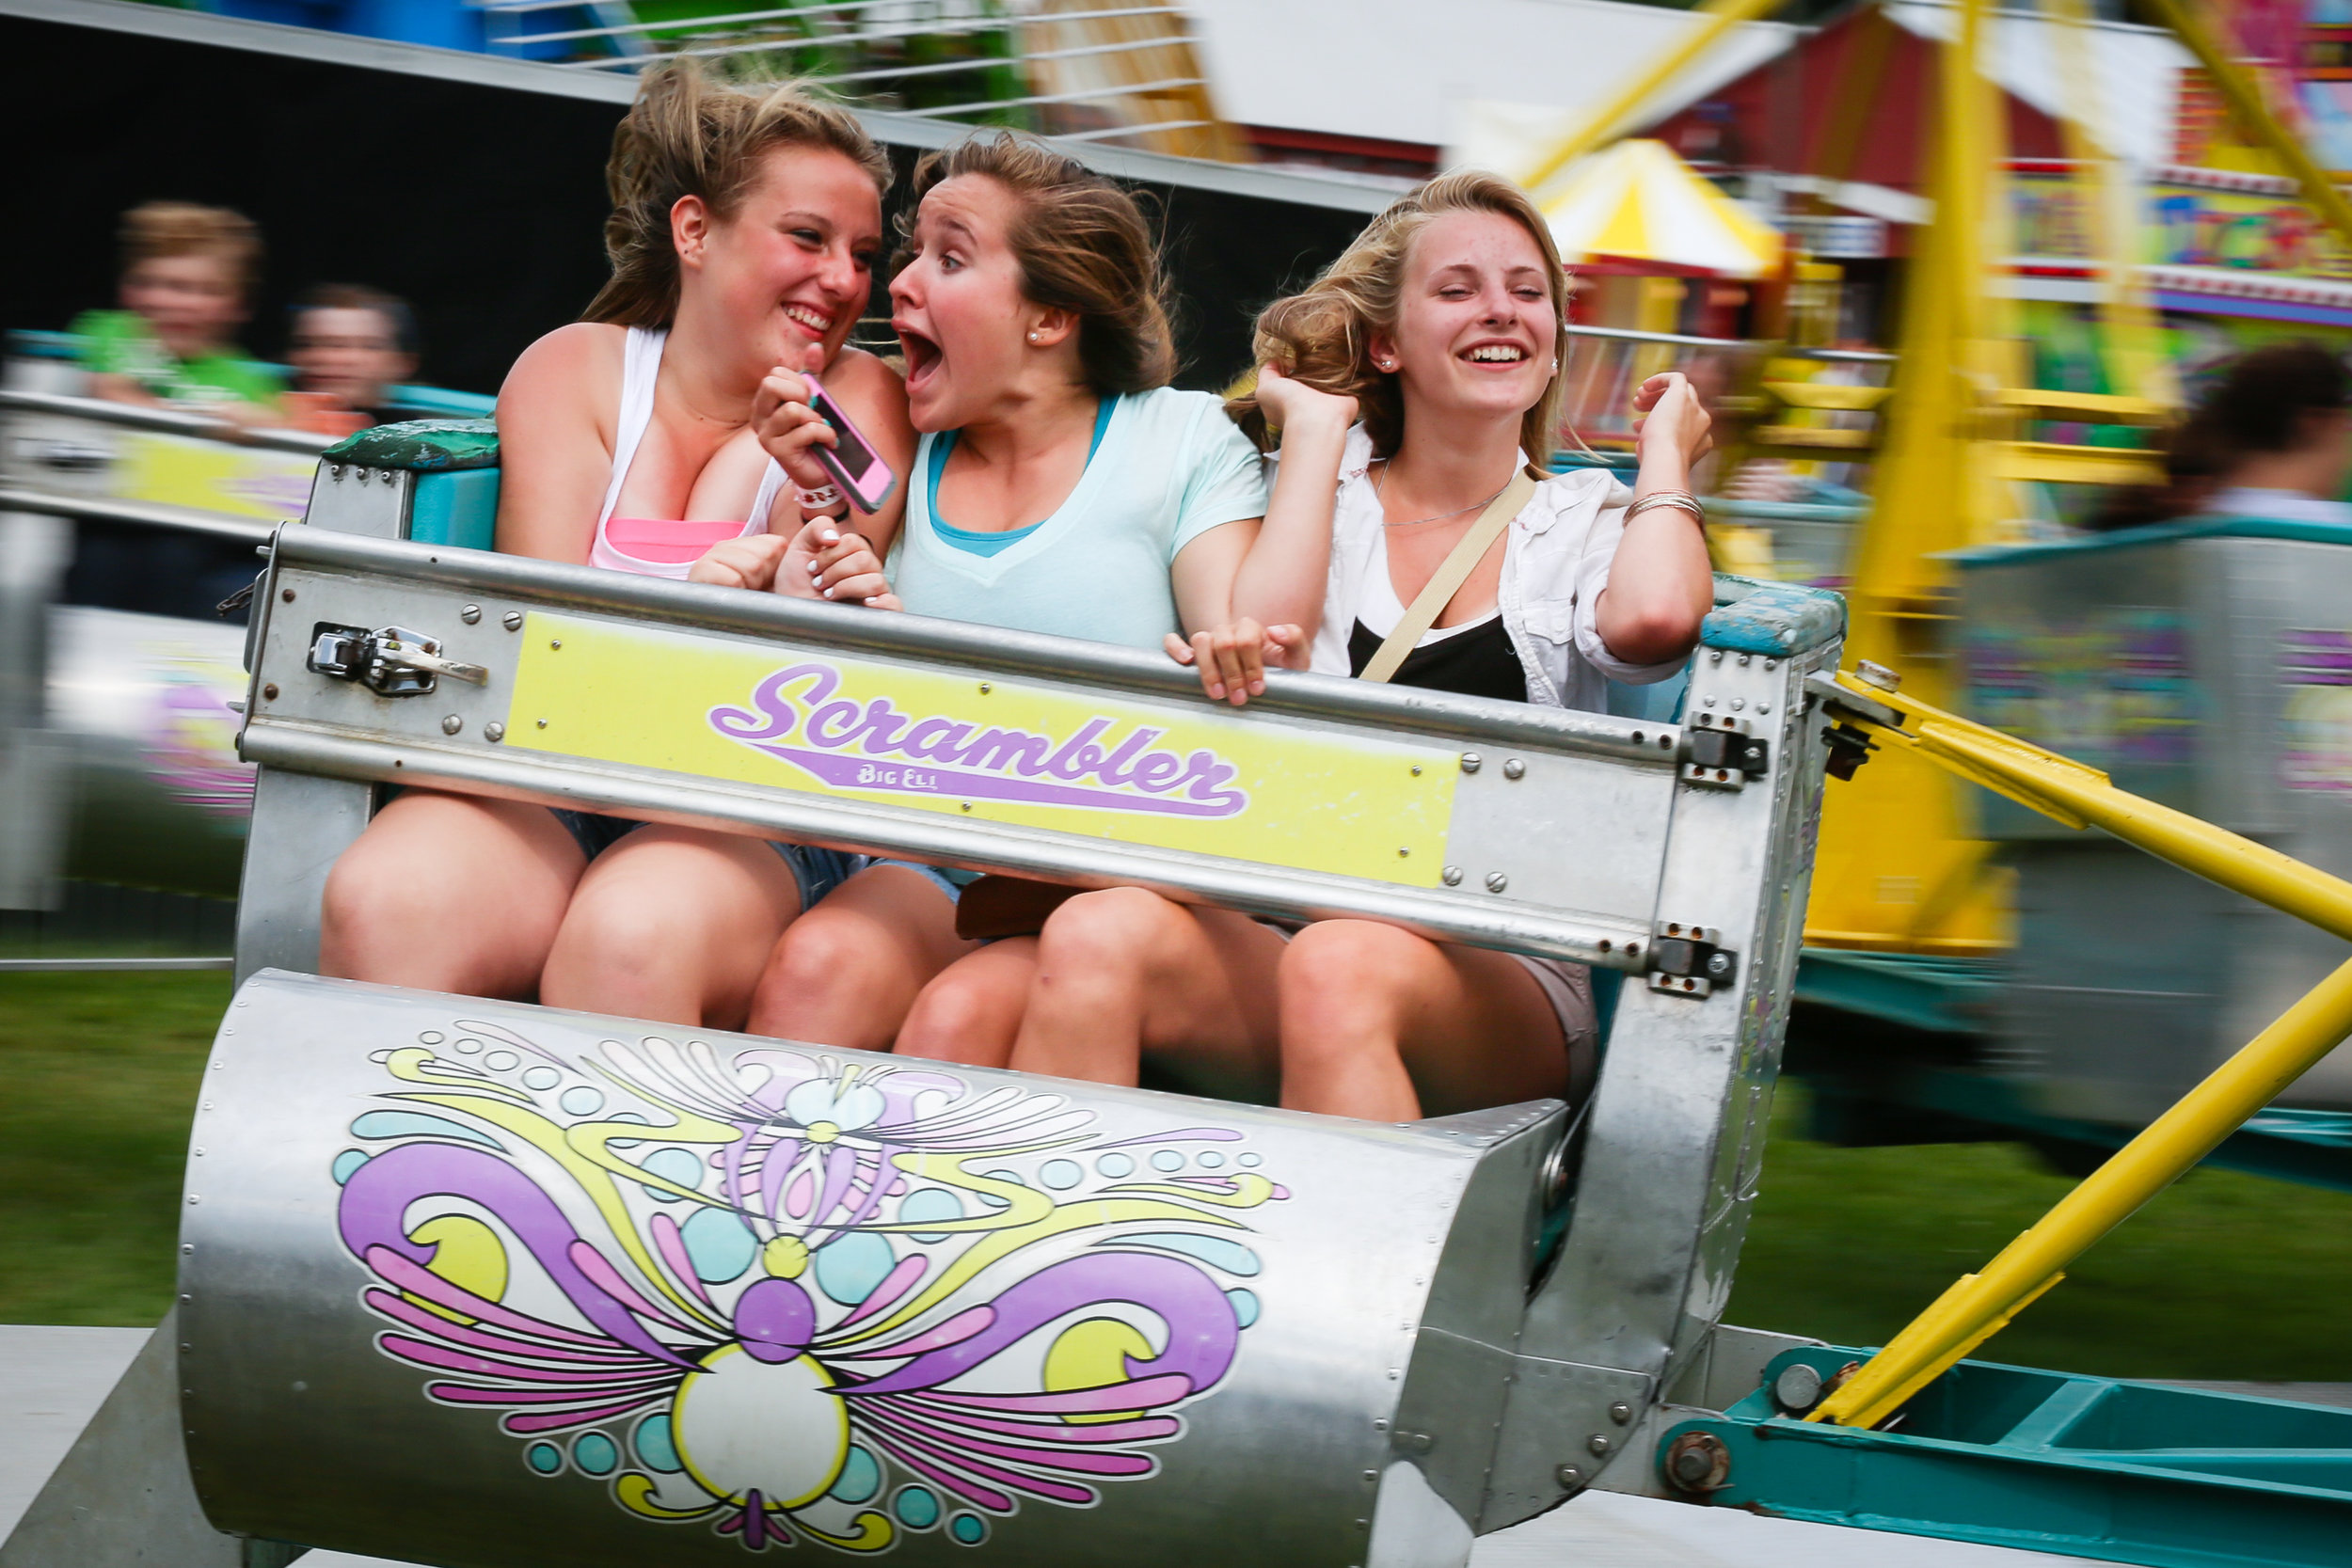 Sophie Hammond, Lily Hier, and Emily Bourne ride the Scrambler at the Cornish Fair in Cornish New Hampshire